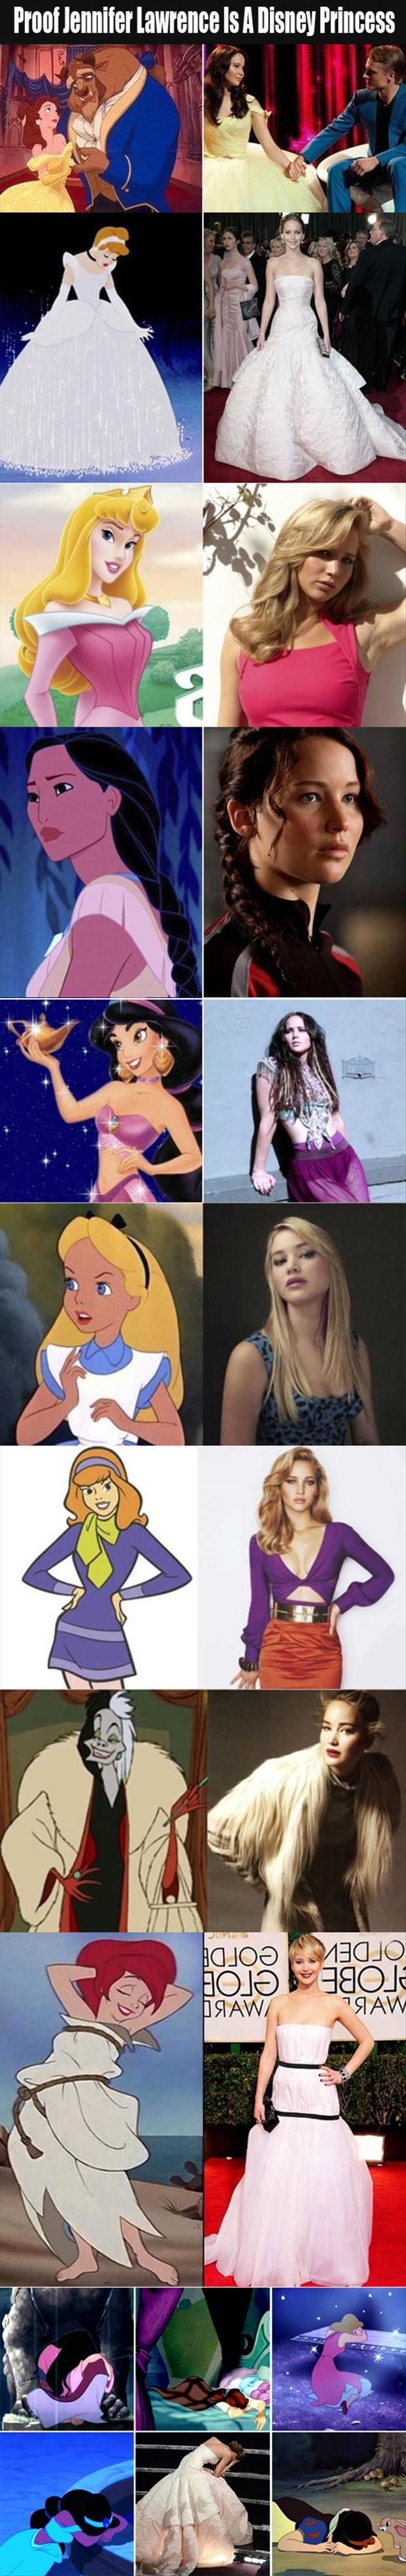 Nice try, but last I checked Daphne wasnt a Disney Princess.... And neither was Cruella De Vil<<still a princess